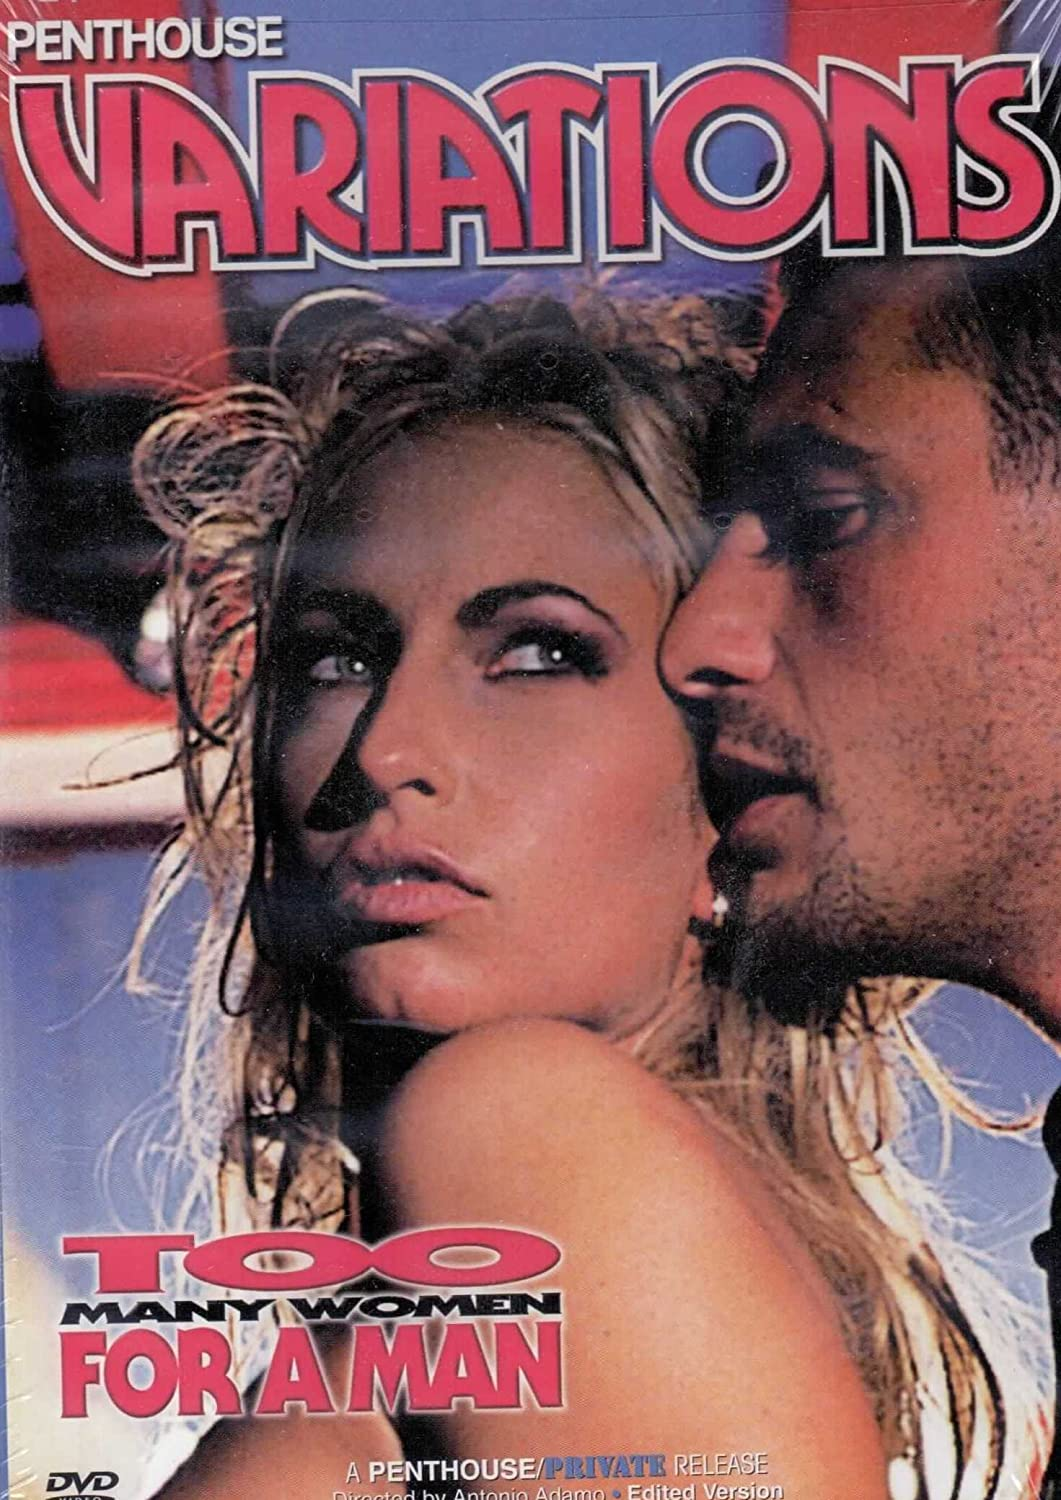 Amazon.com: Penthouse: Variations ~ Too Many Women for a Man: Movies & TV